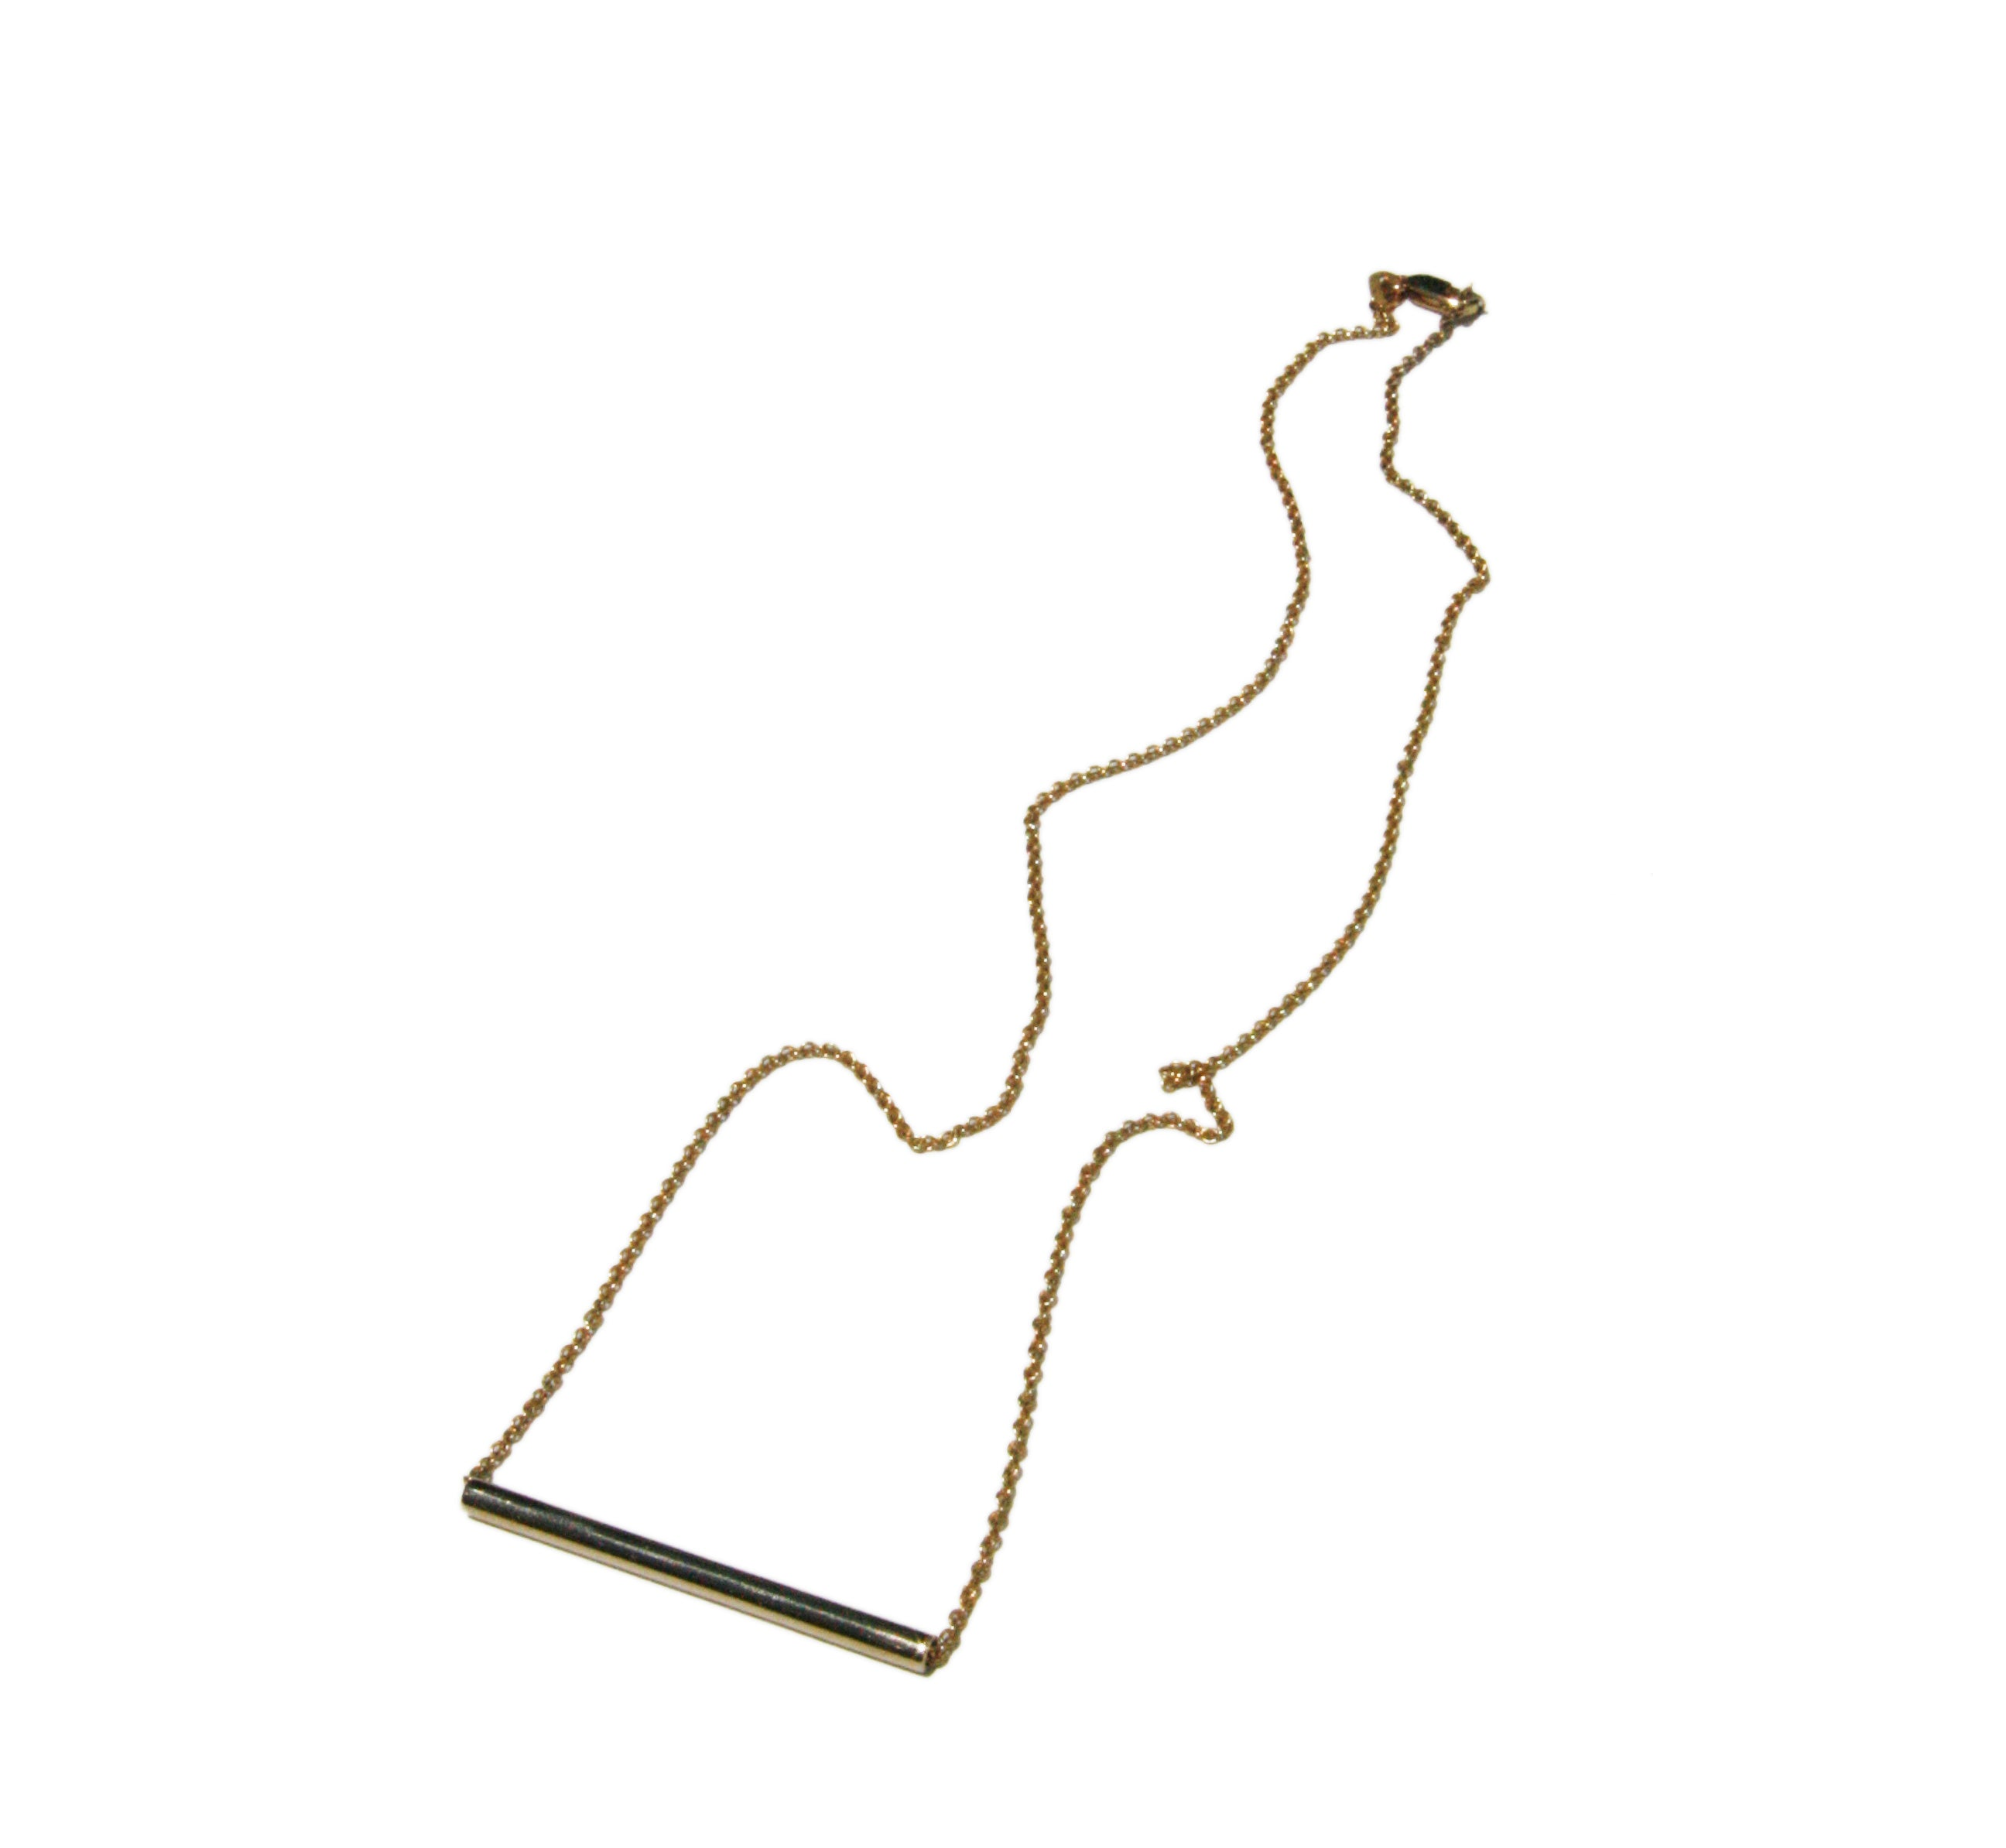 Gold rod necklace